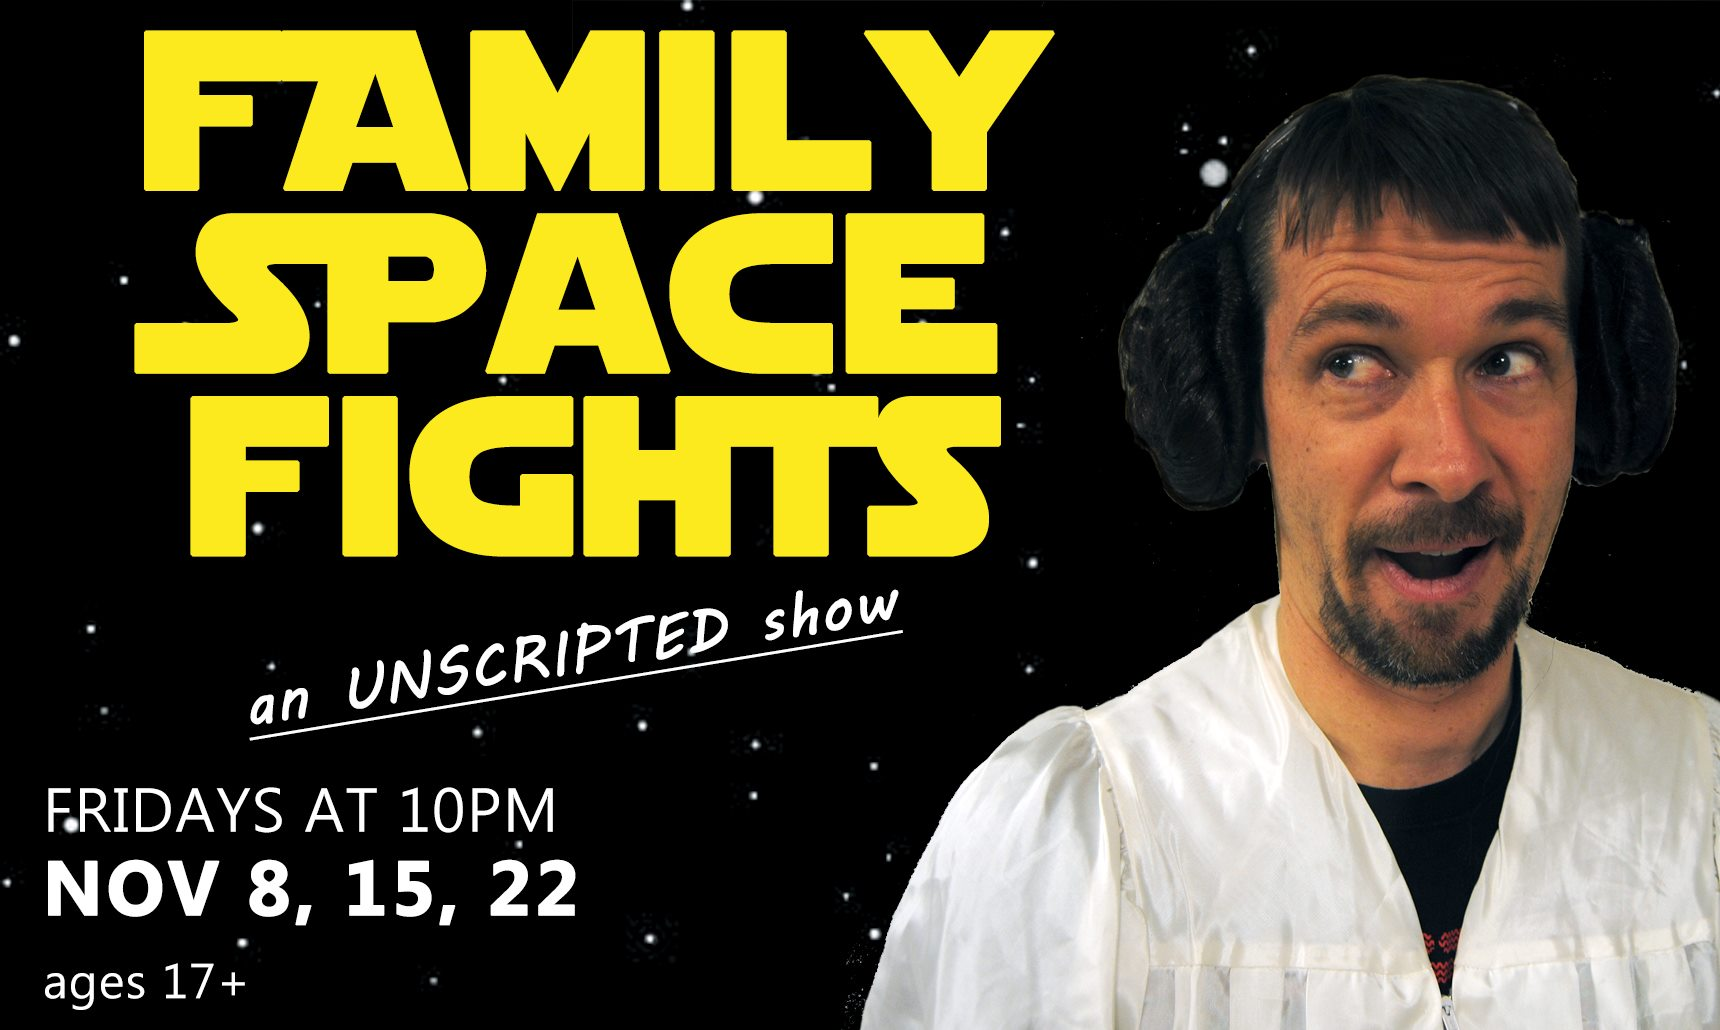 Family Space Fights